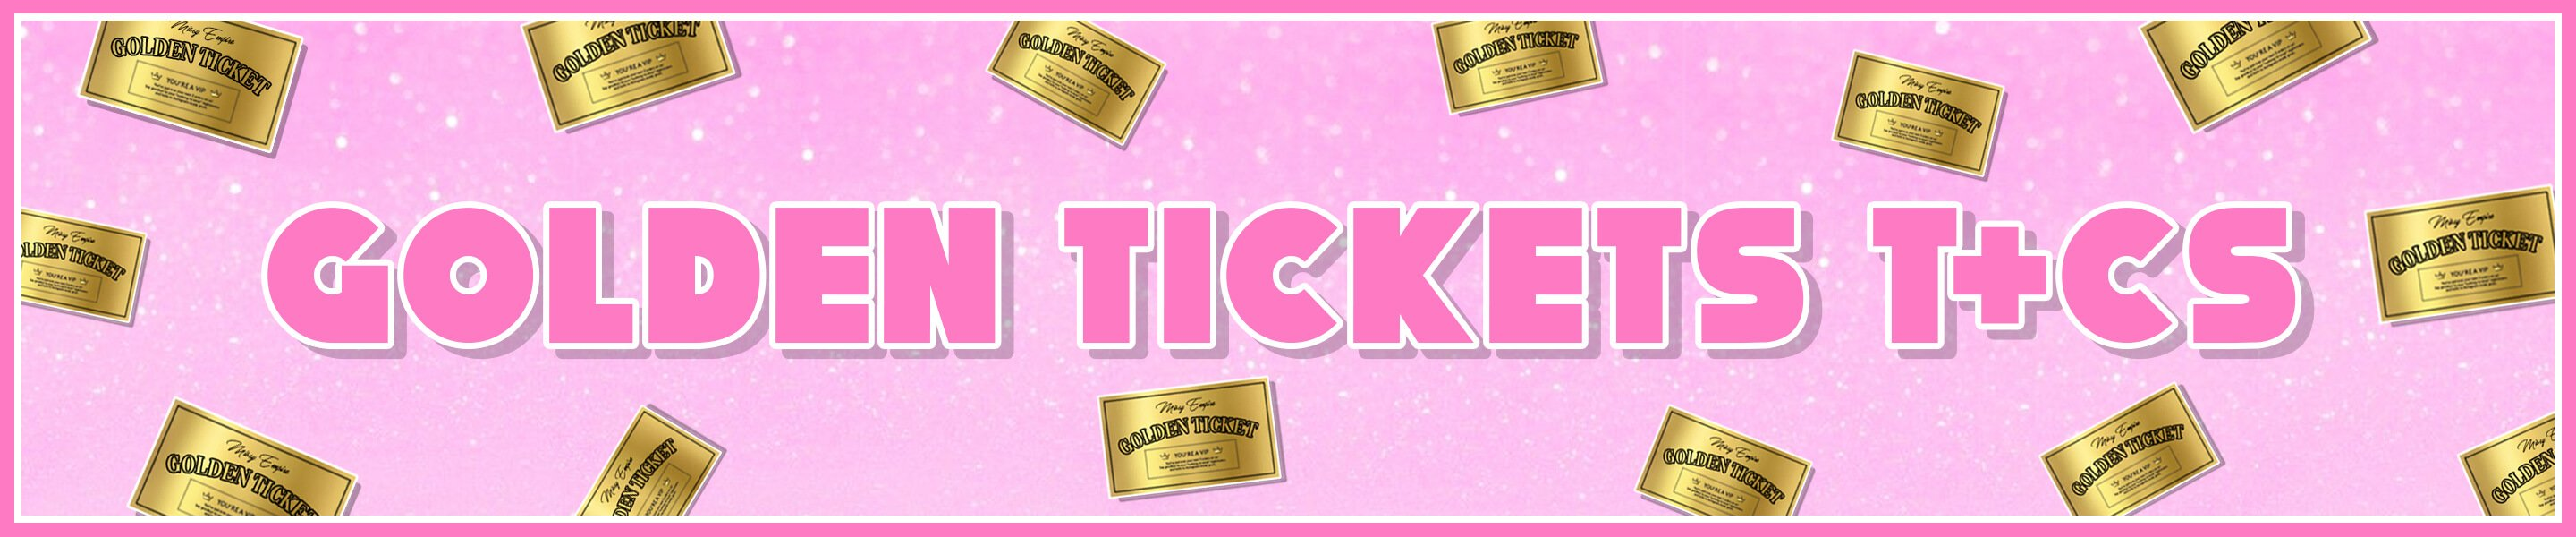 MISSYEMPIRE Golden Ticket